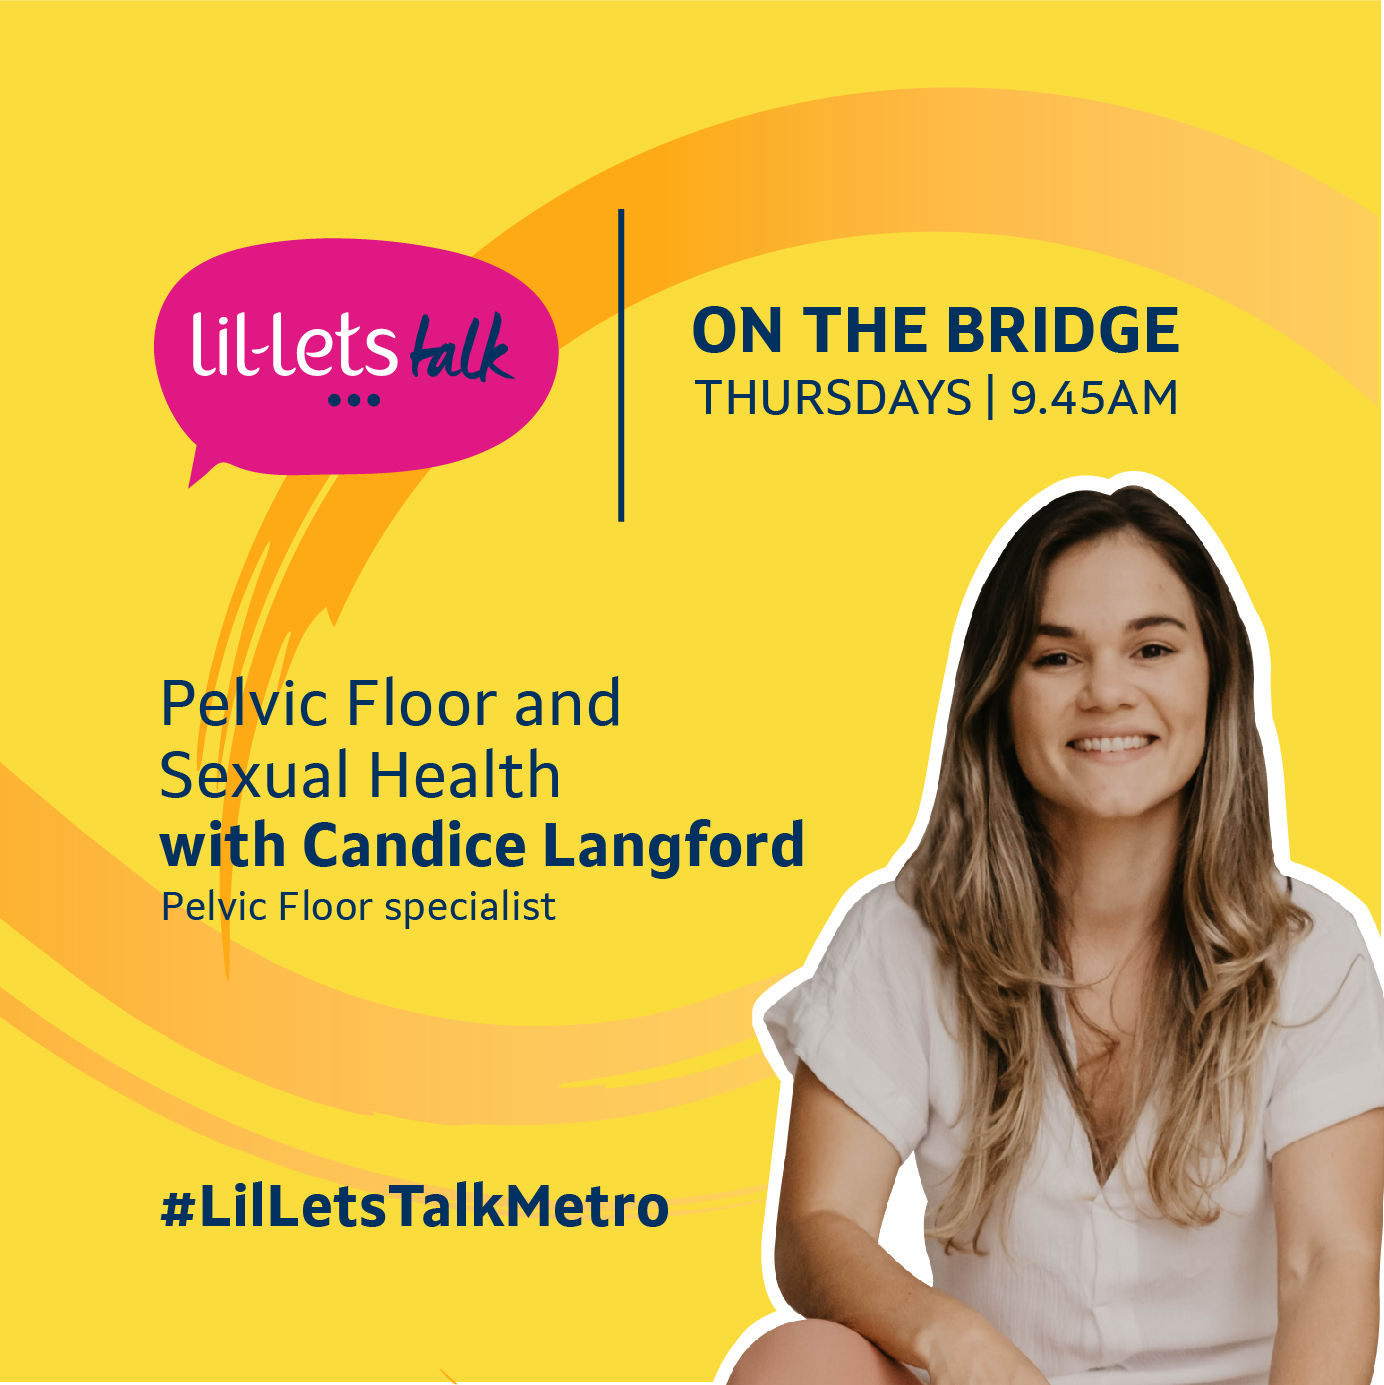 Pelvic Floor and Sexual Health with Candice Langford